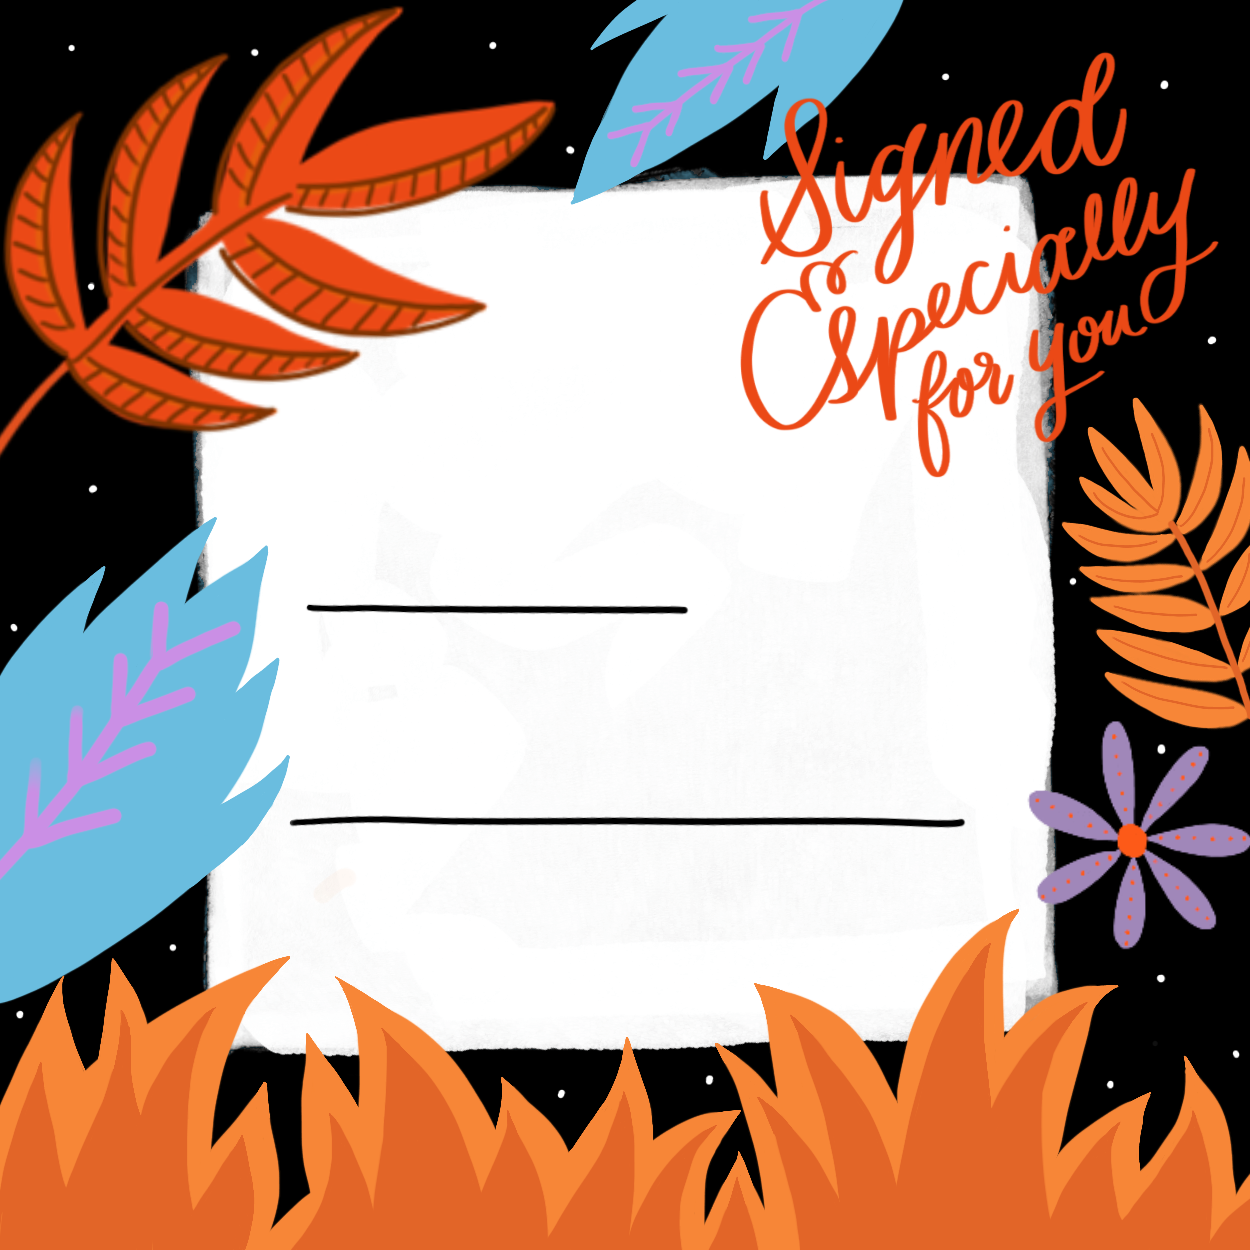 When-We-Set-The-Dark-On-Fire-Bookplate-Sticker.png